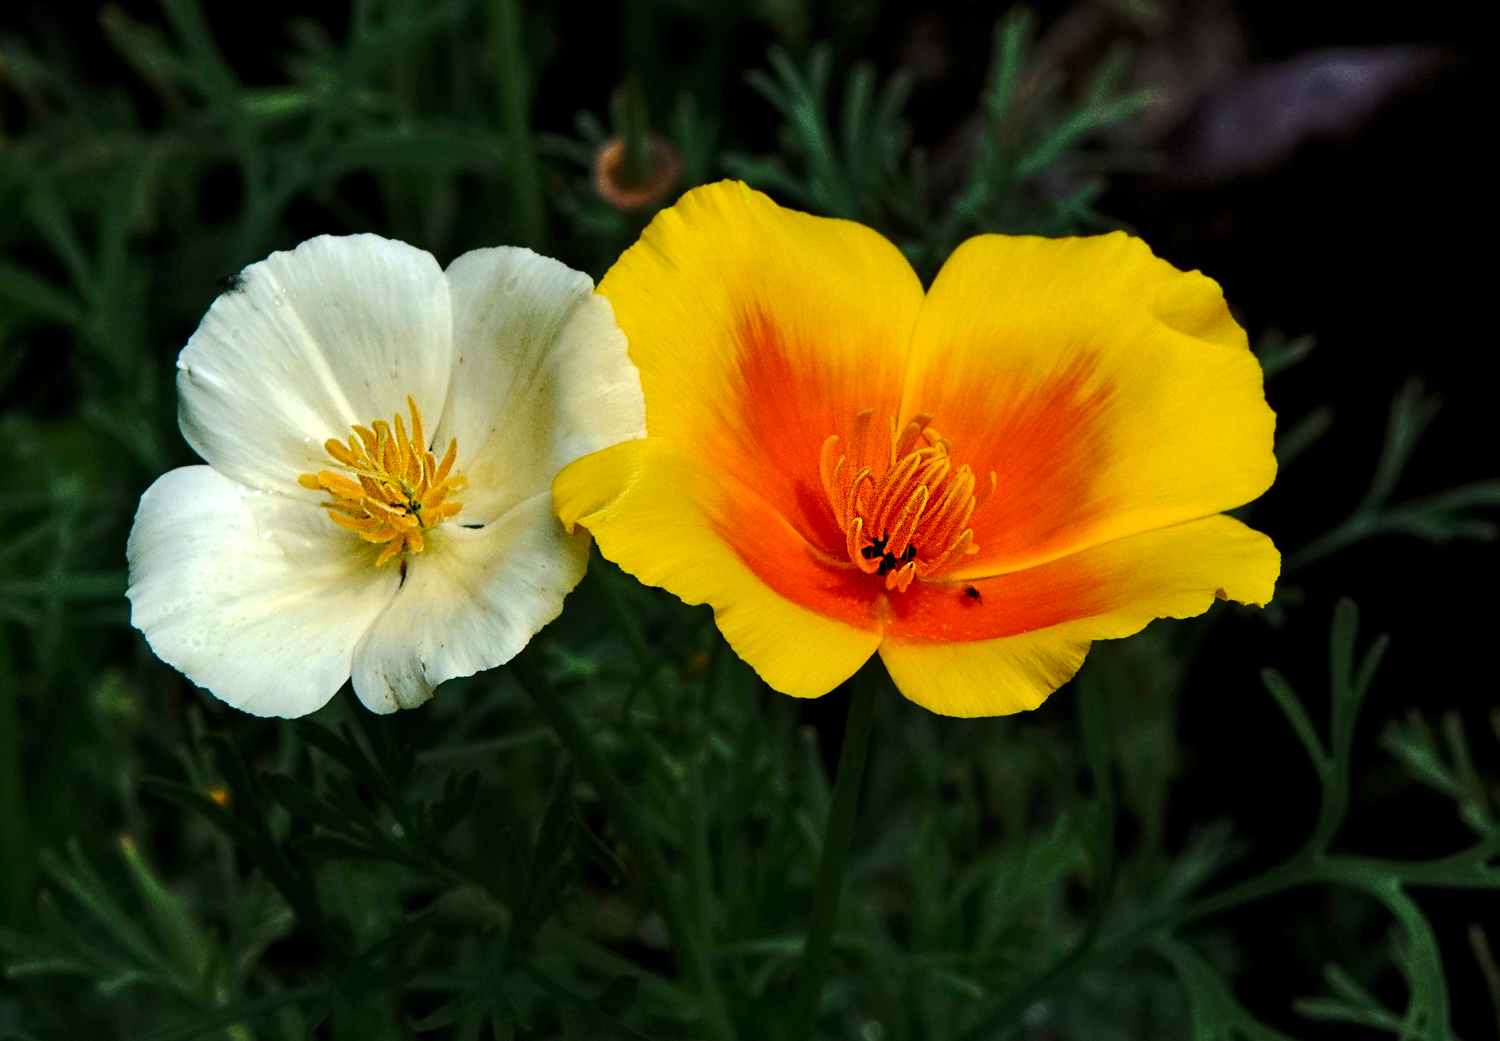 california poppies author sava gregory and verena